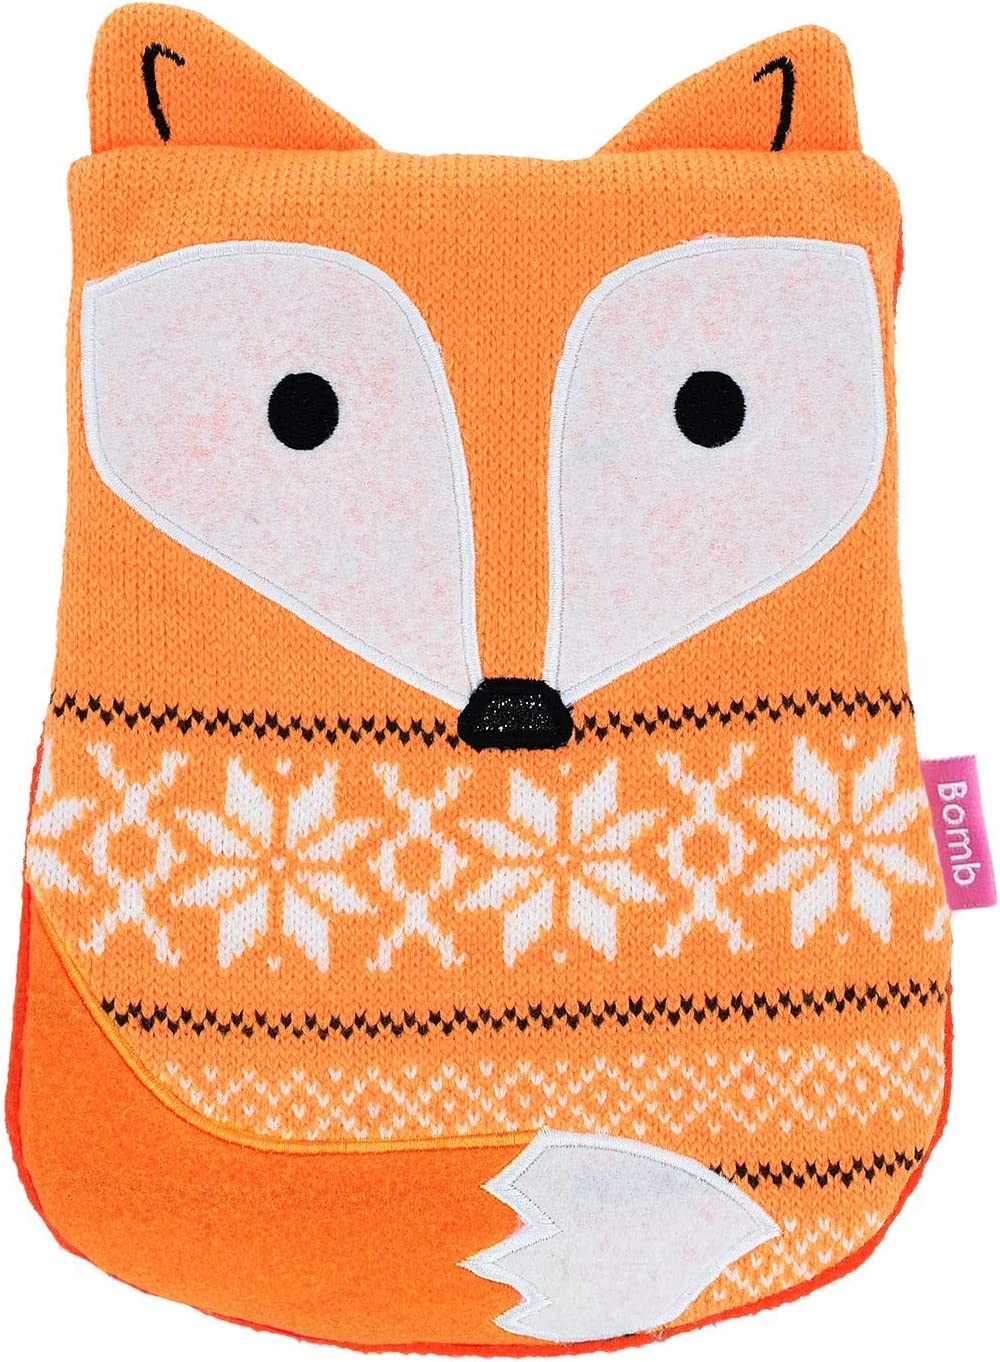 Bomb Cosmetics Freddie The Fox Herbal Knitted Special Online limited product Campaign Body Microwaveable